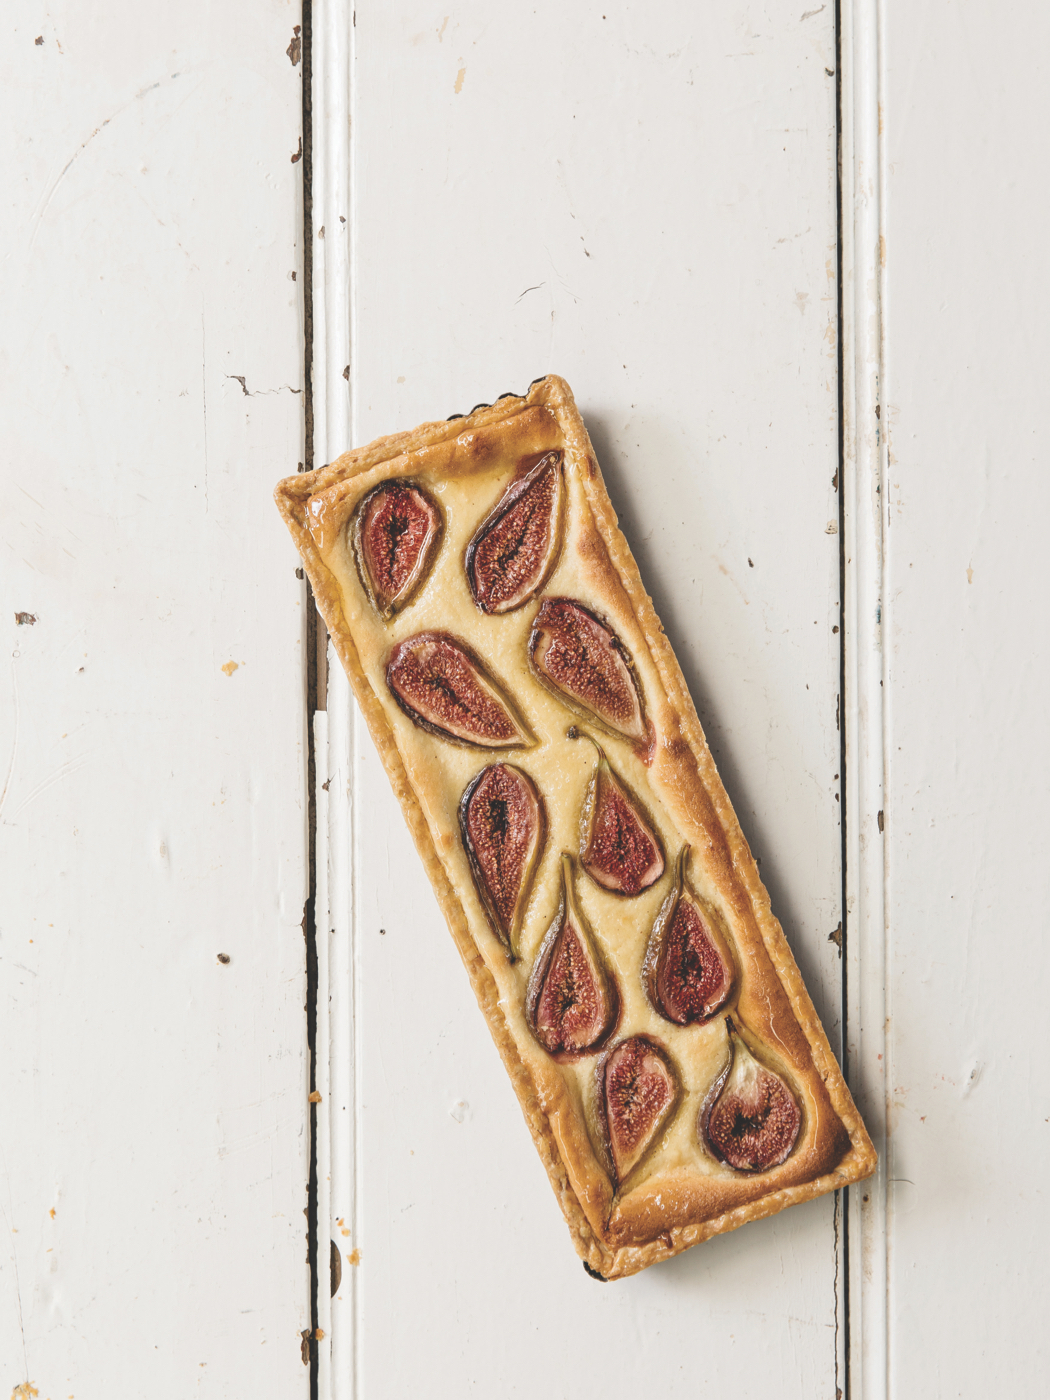 Food For Sharing Italian Style fig and almond tart